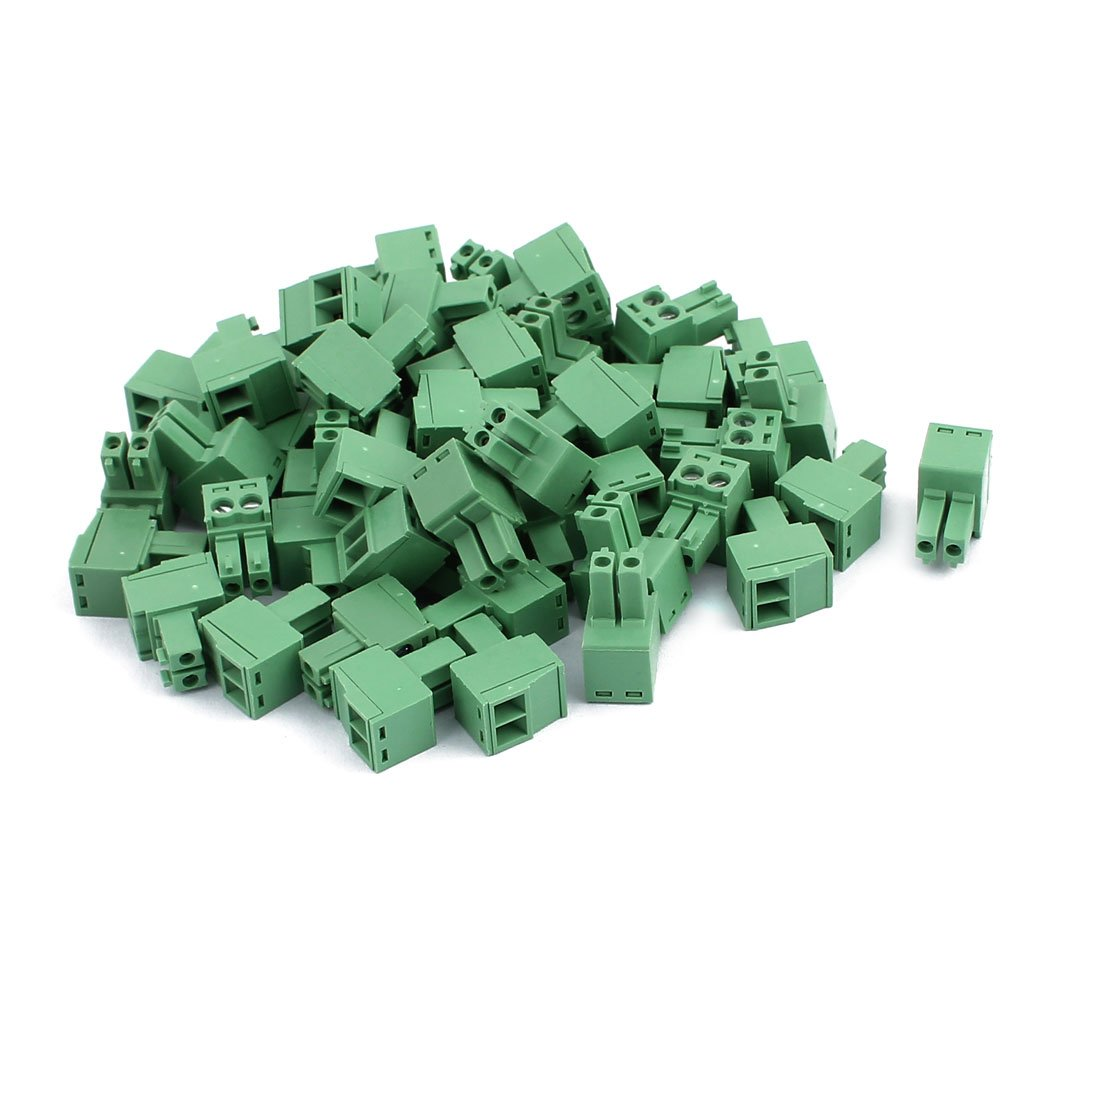 uxcell 50Pcs 300V KF2EDGK 3.5mm Pitch 2-Pin PCB Screw Terminal Block Connector